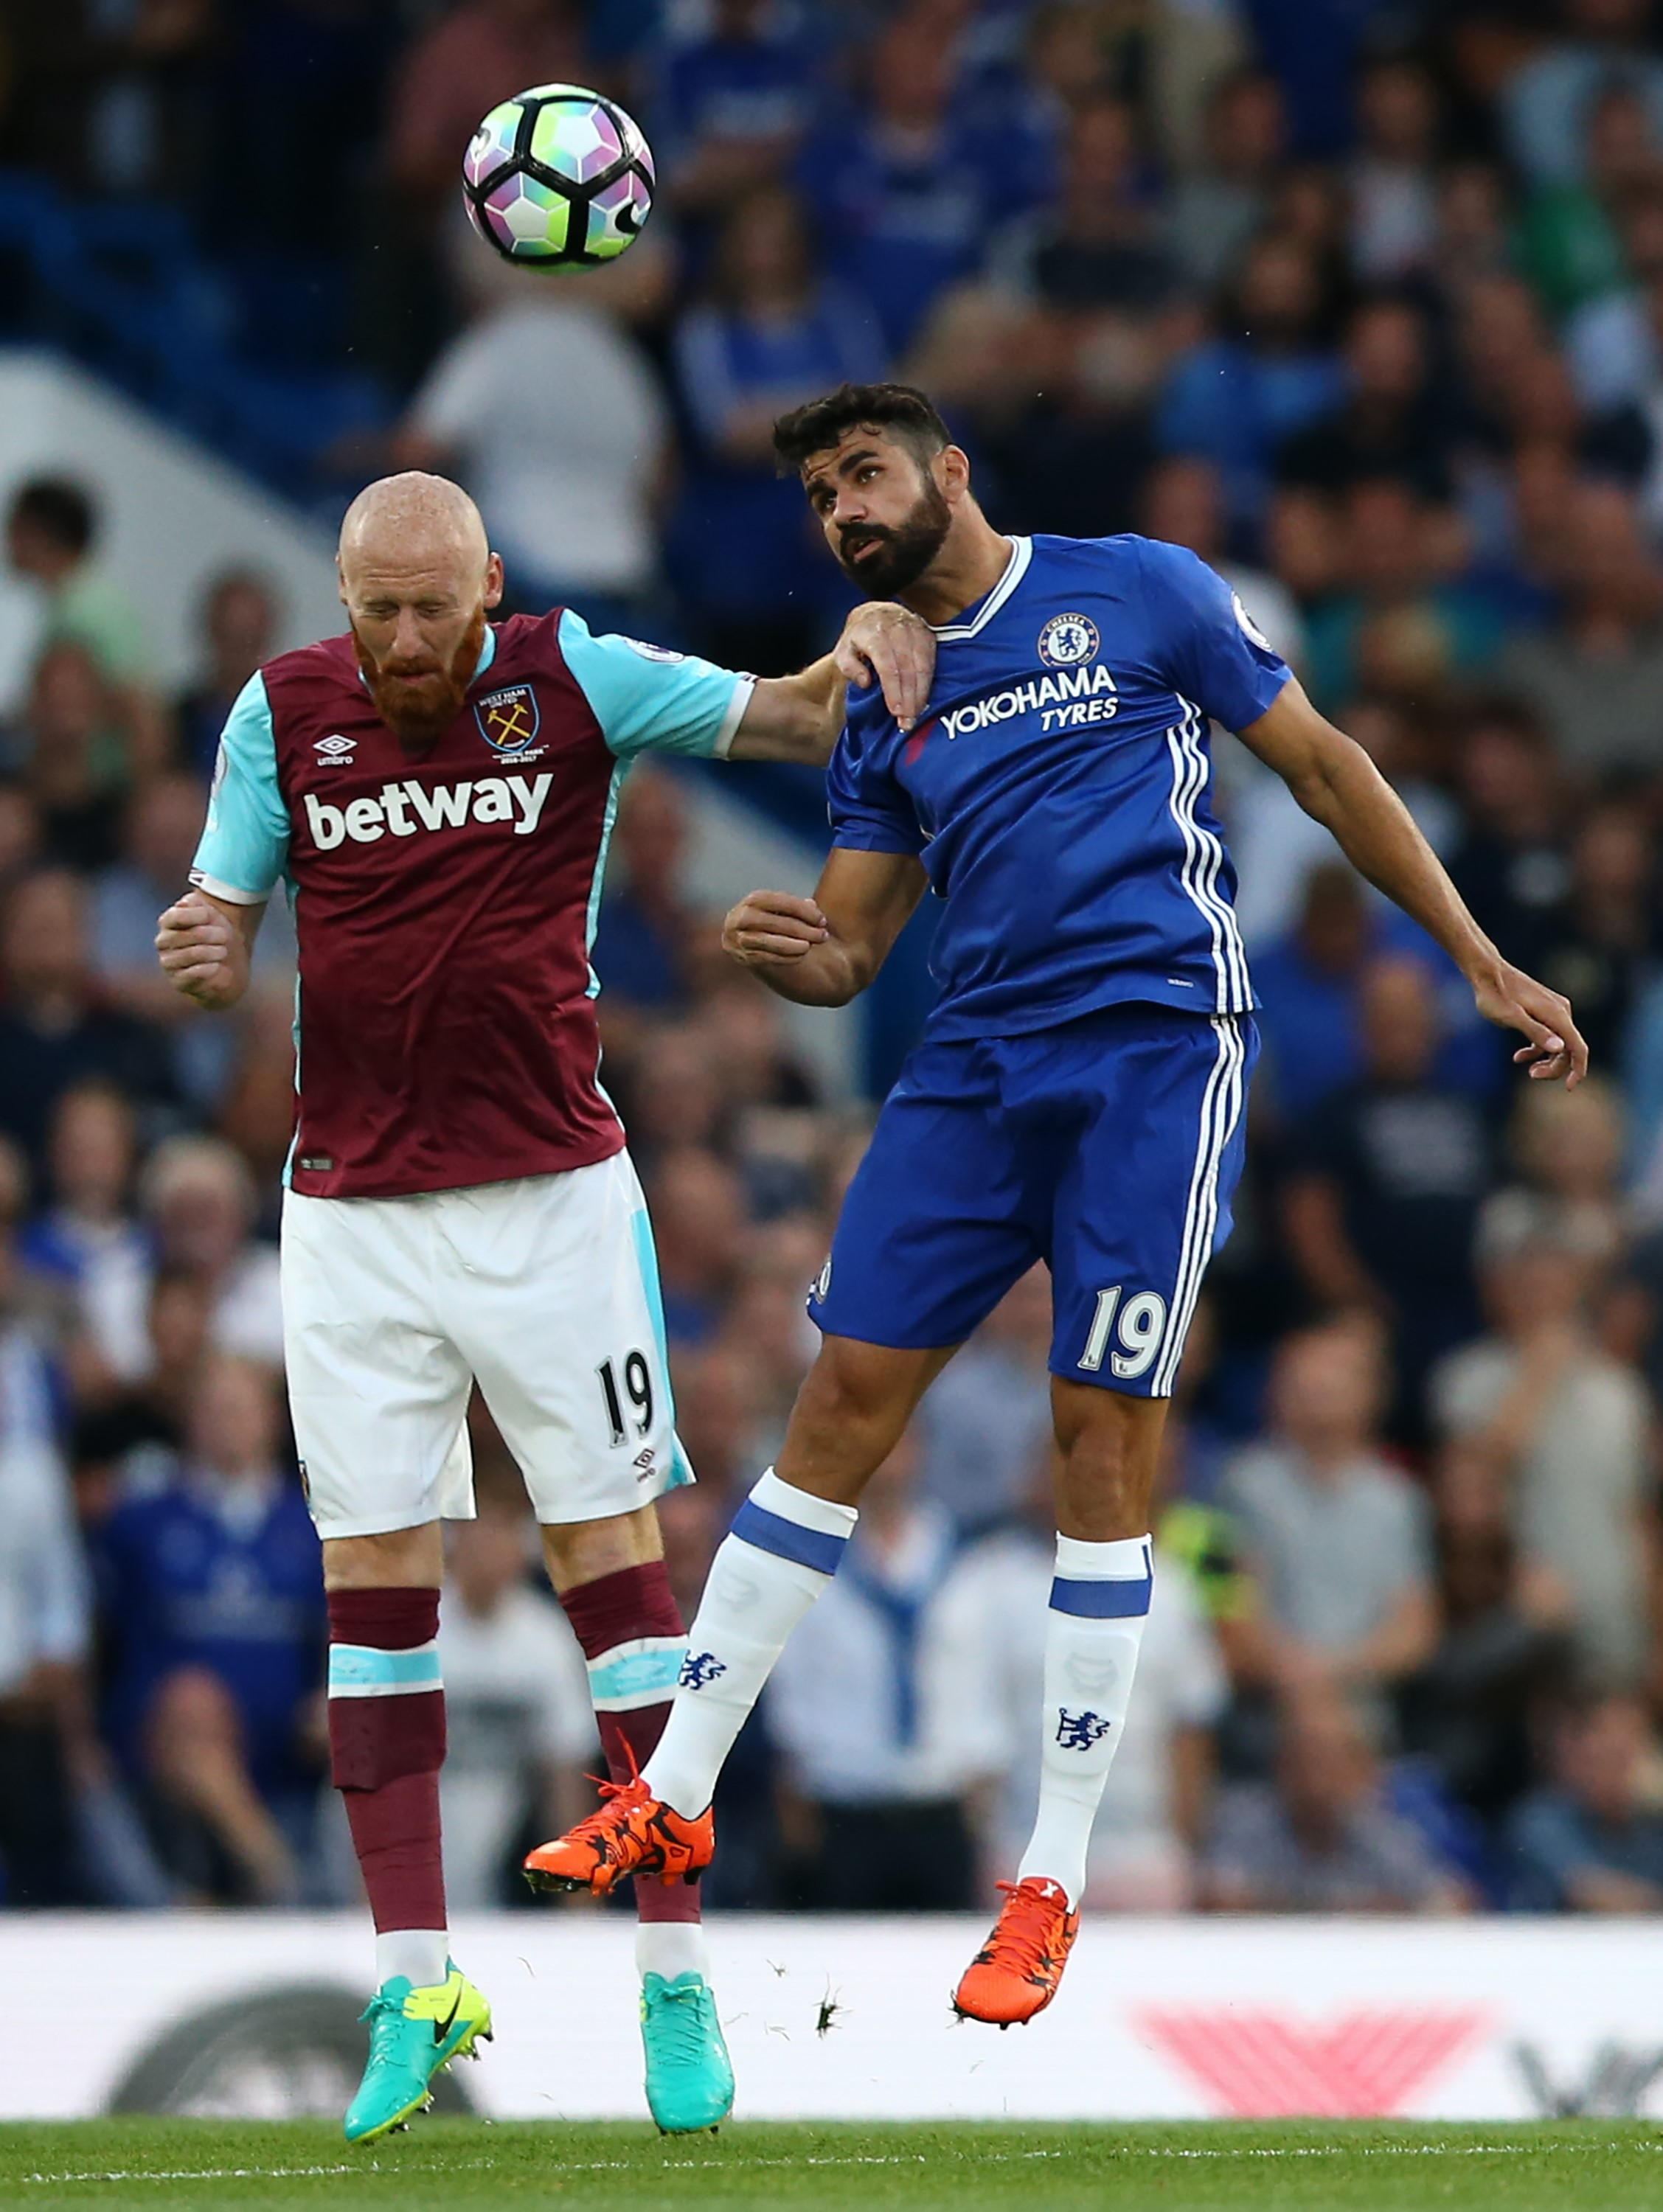 West Ham United's Welsh defender James Collins (L) vies with Chelsea's Brazilian-born Spanish striker Diego Costa during the English Premier League football match between Chelsea and West Ham United at Stamford Bridge in London on August 15, 2016.